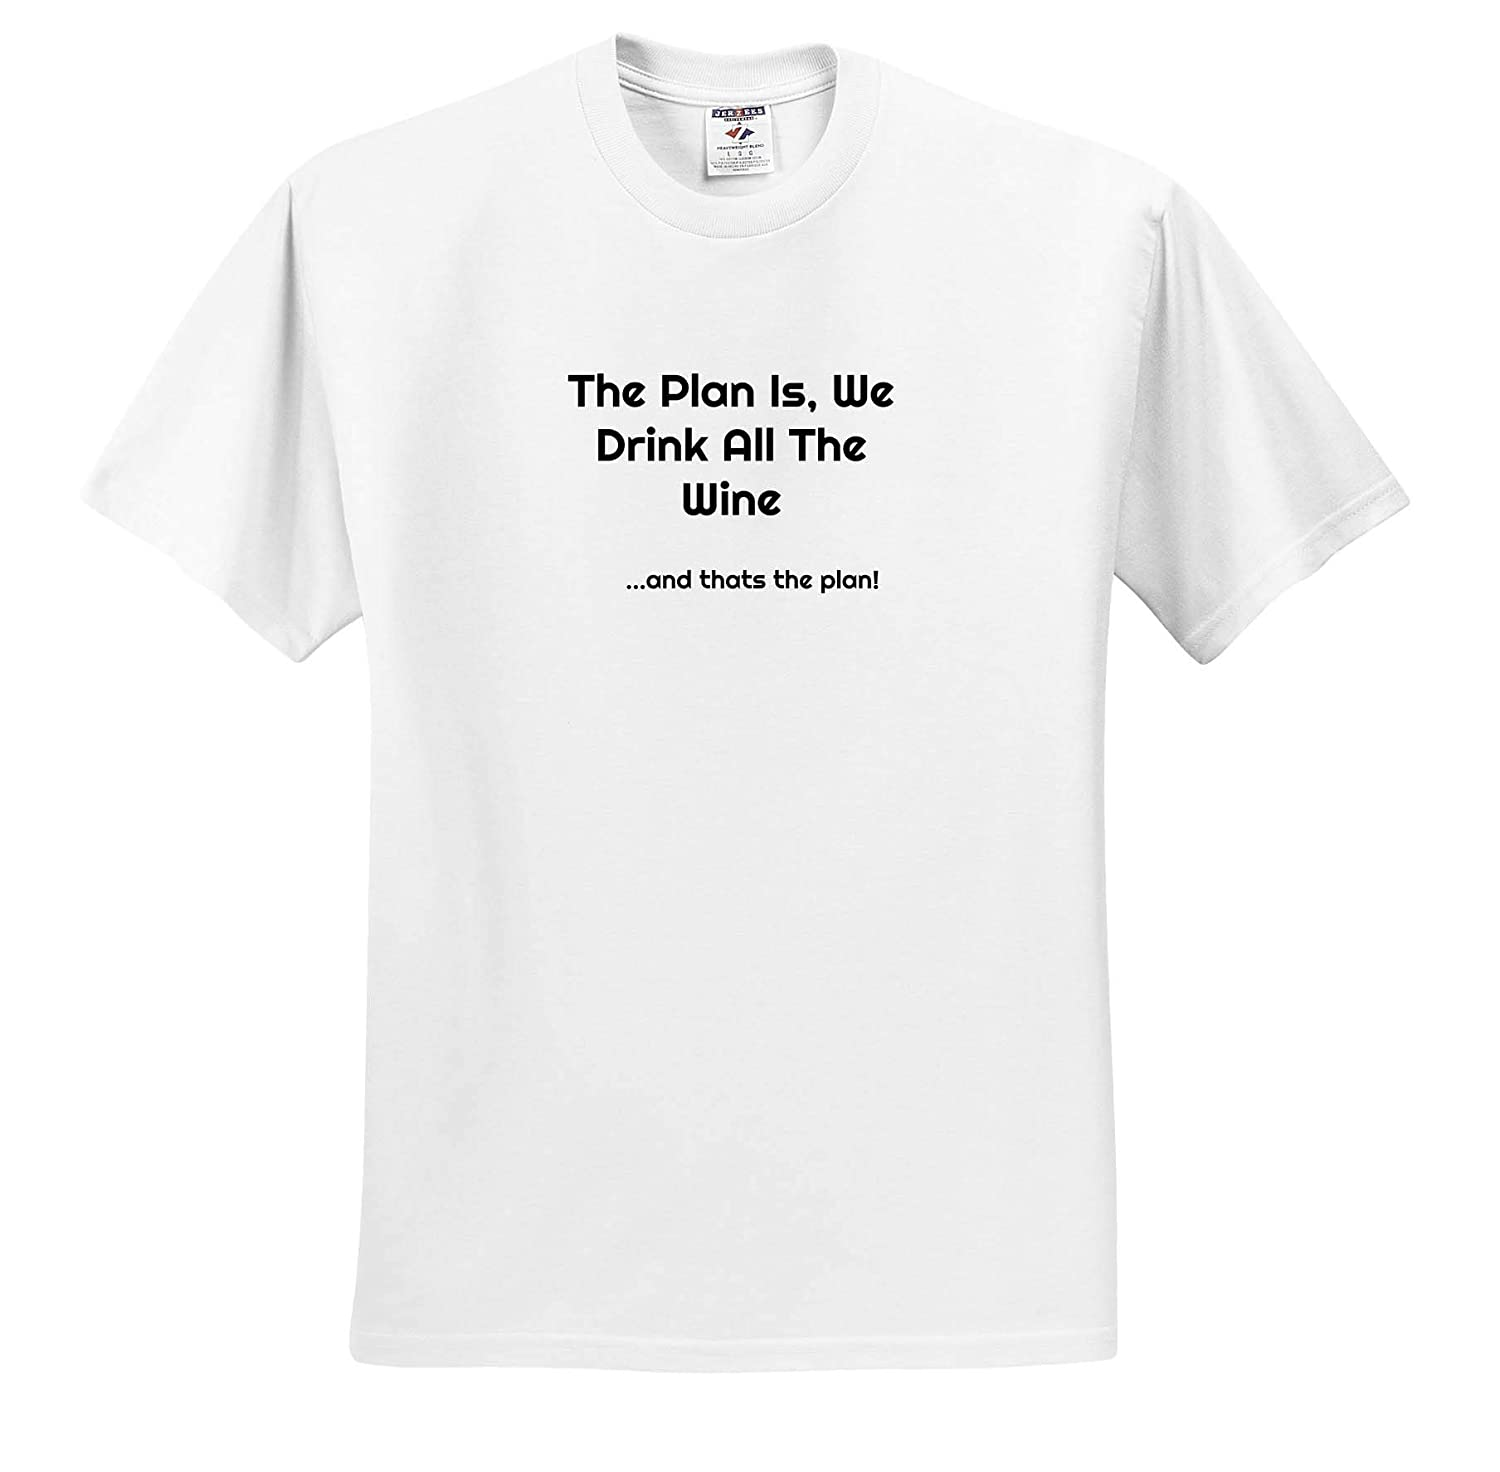 3dRose Carrie Merchant Quote Image of The Plan is We Drink All The Wine ts/_315344 Adult T-Shirt XL